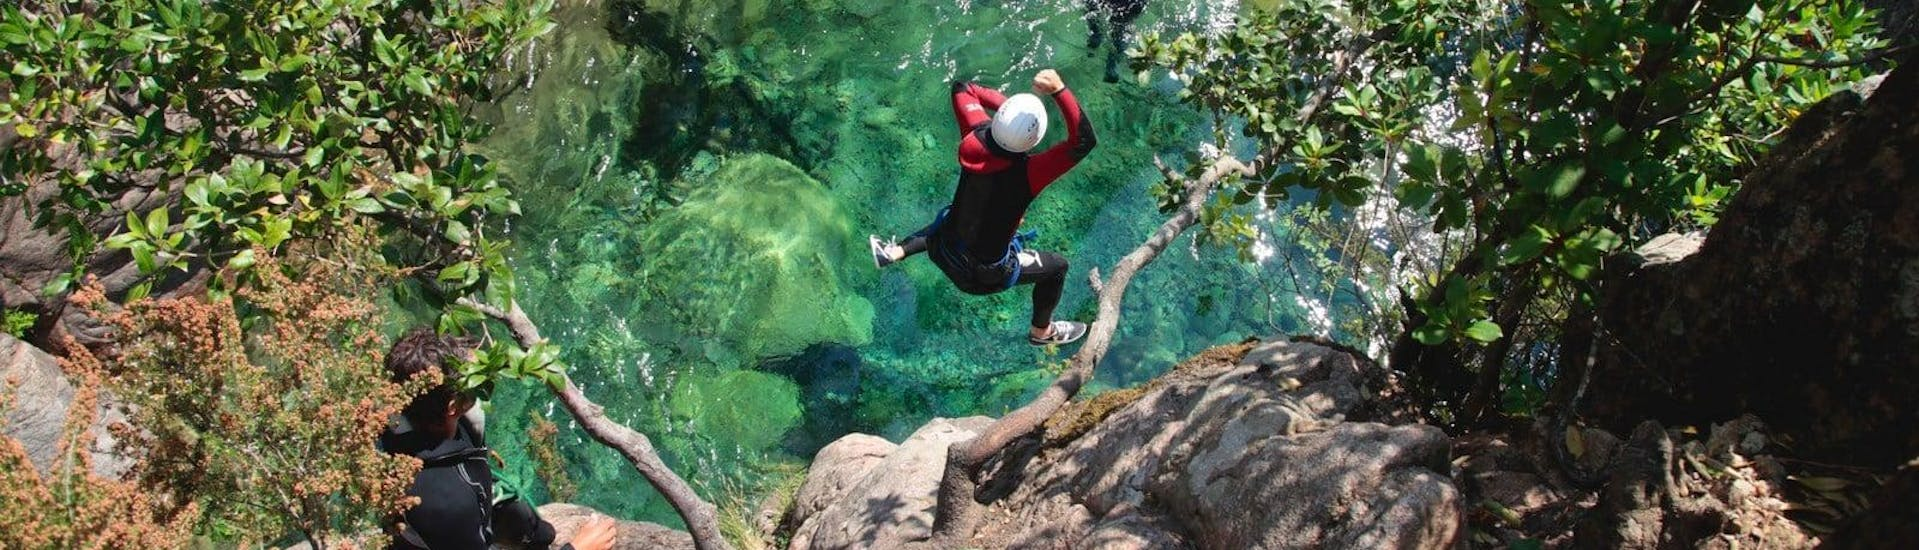 A canyoning enthusiast is jumping into an emerald green natural pool under the supervision of a qualified canyoning guide from Acqua et Natura which offers canyoning trips in Corsica.